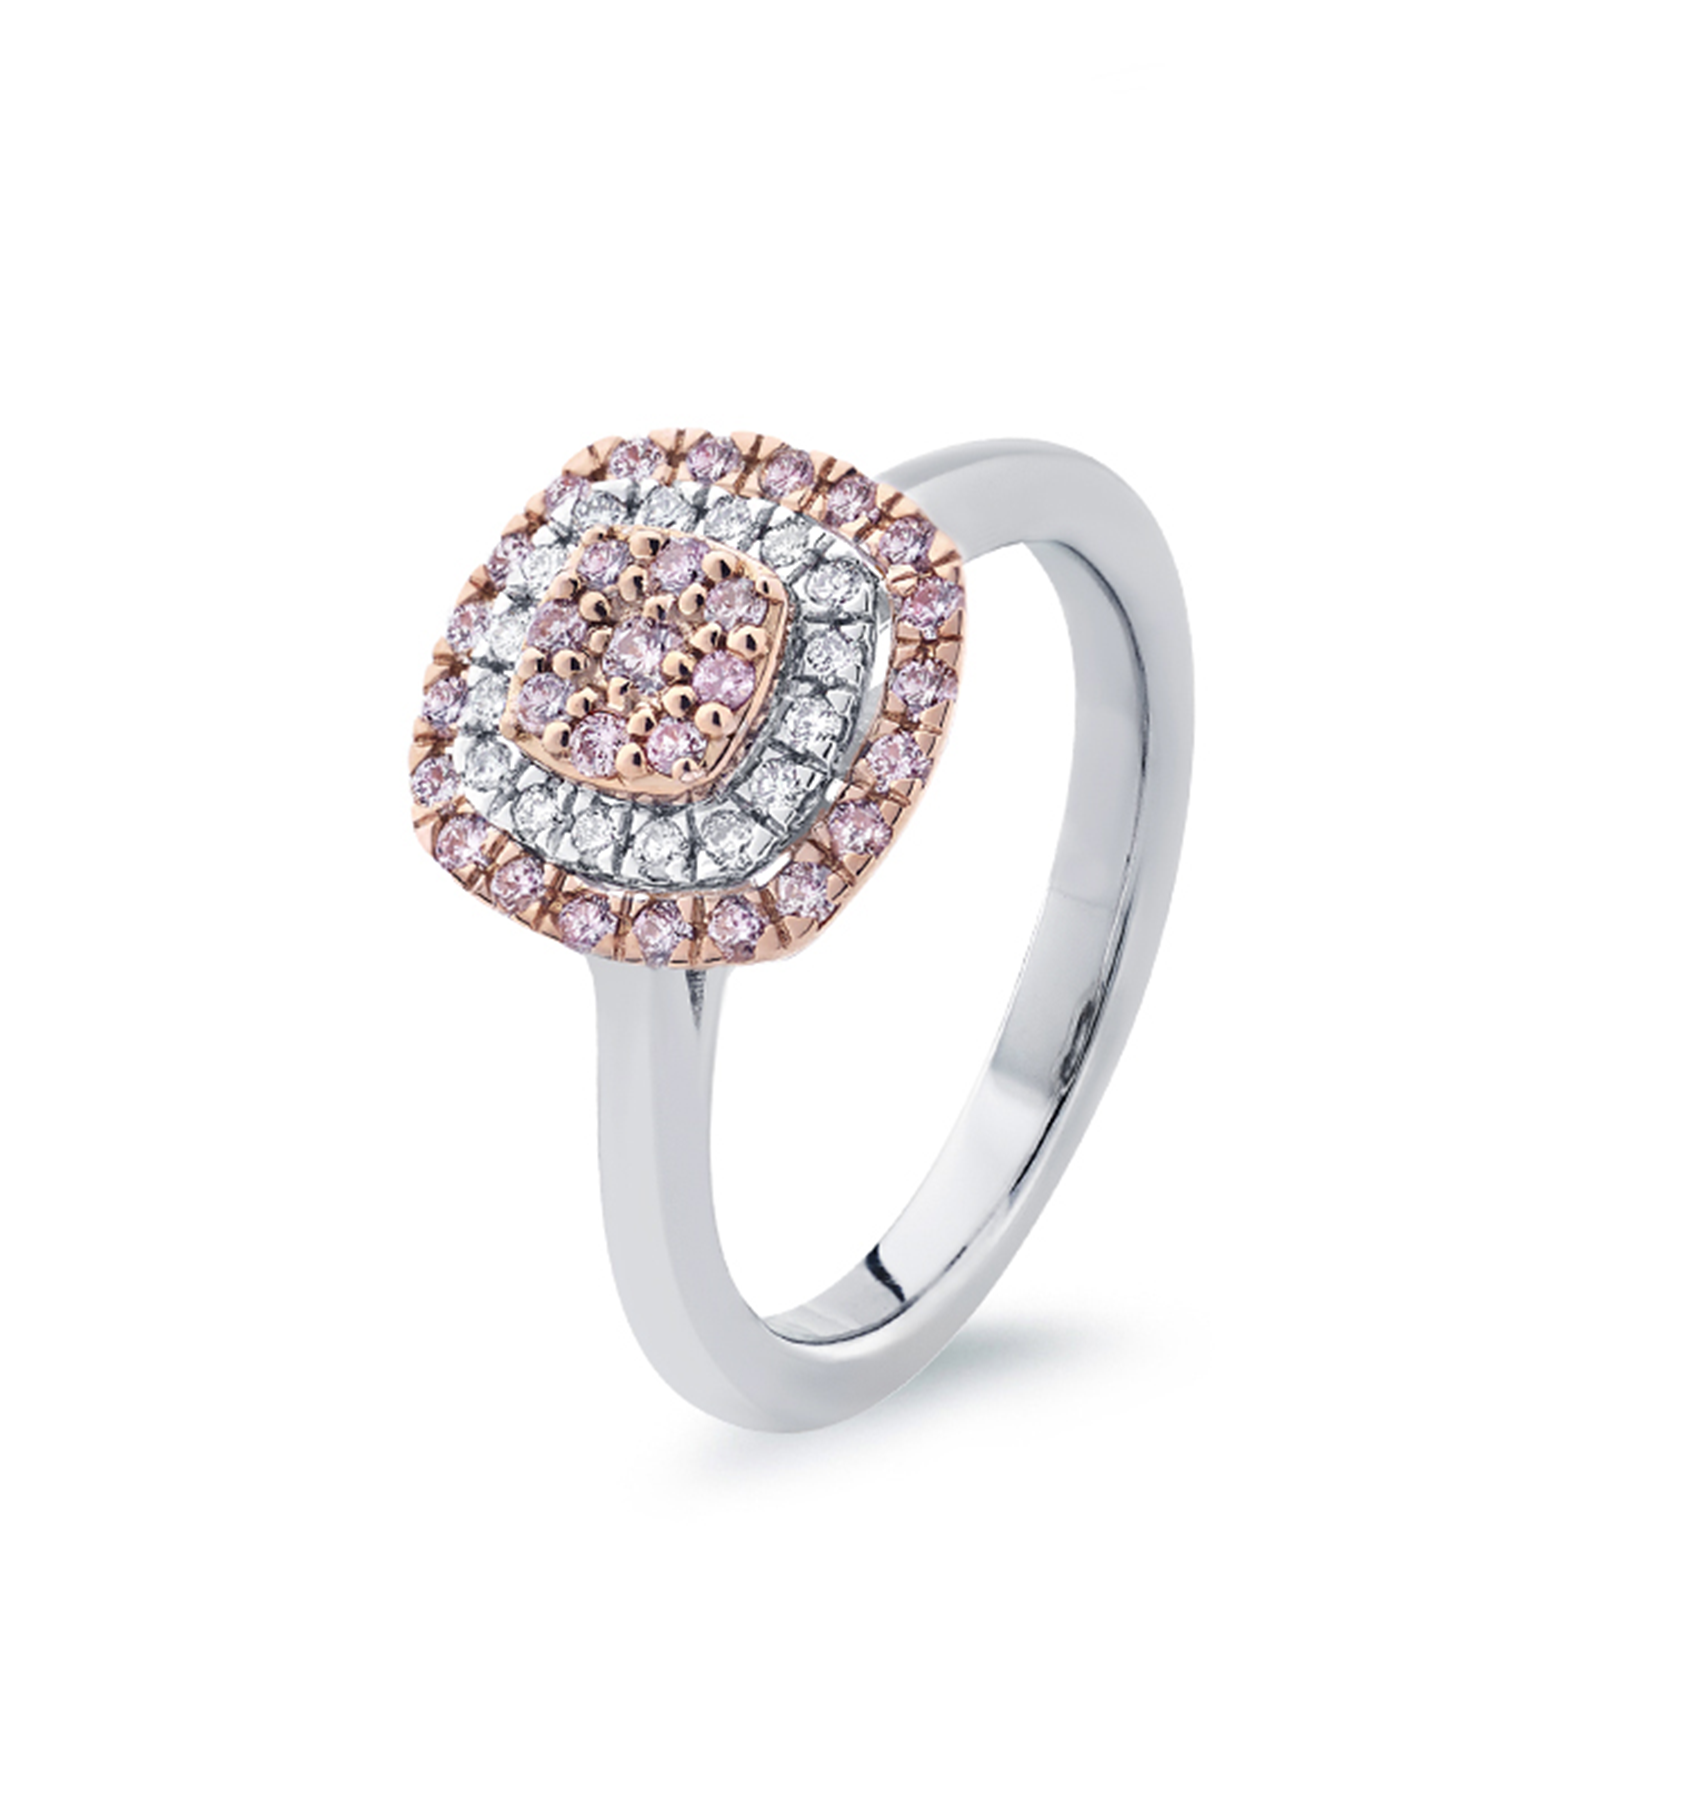 Photo of Blush Pink and White Diamond Ring